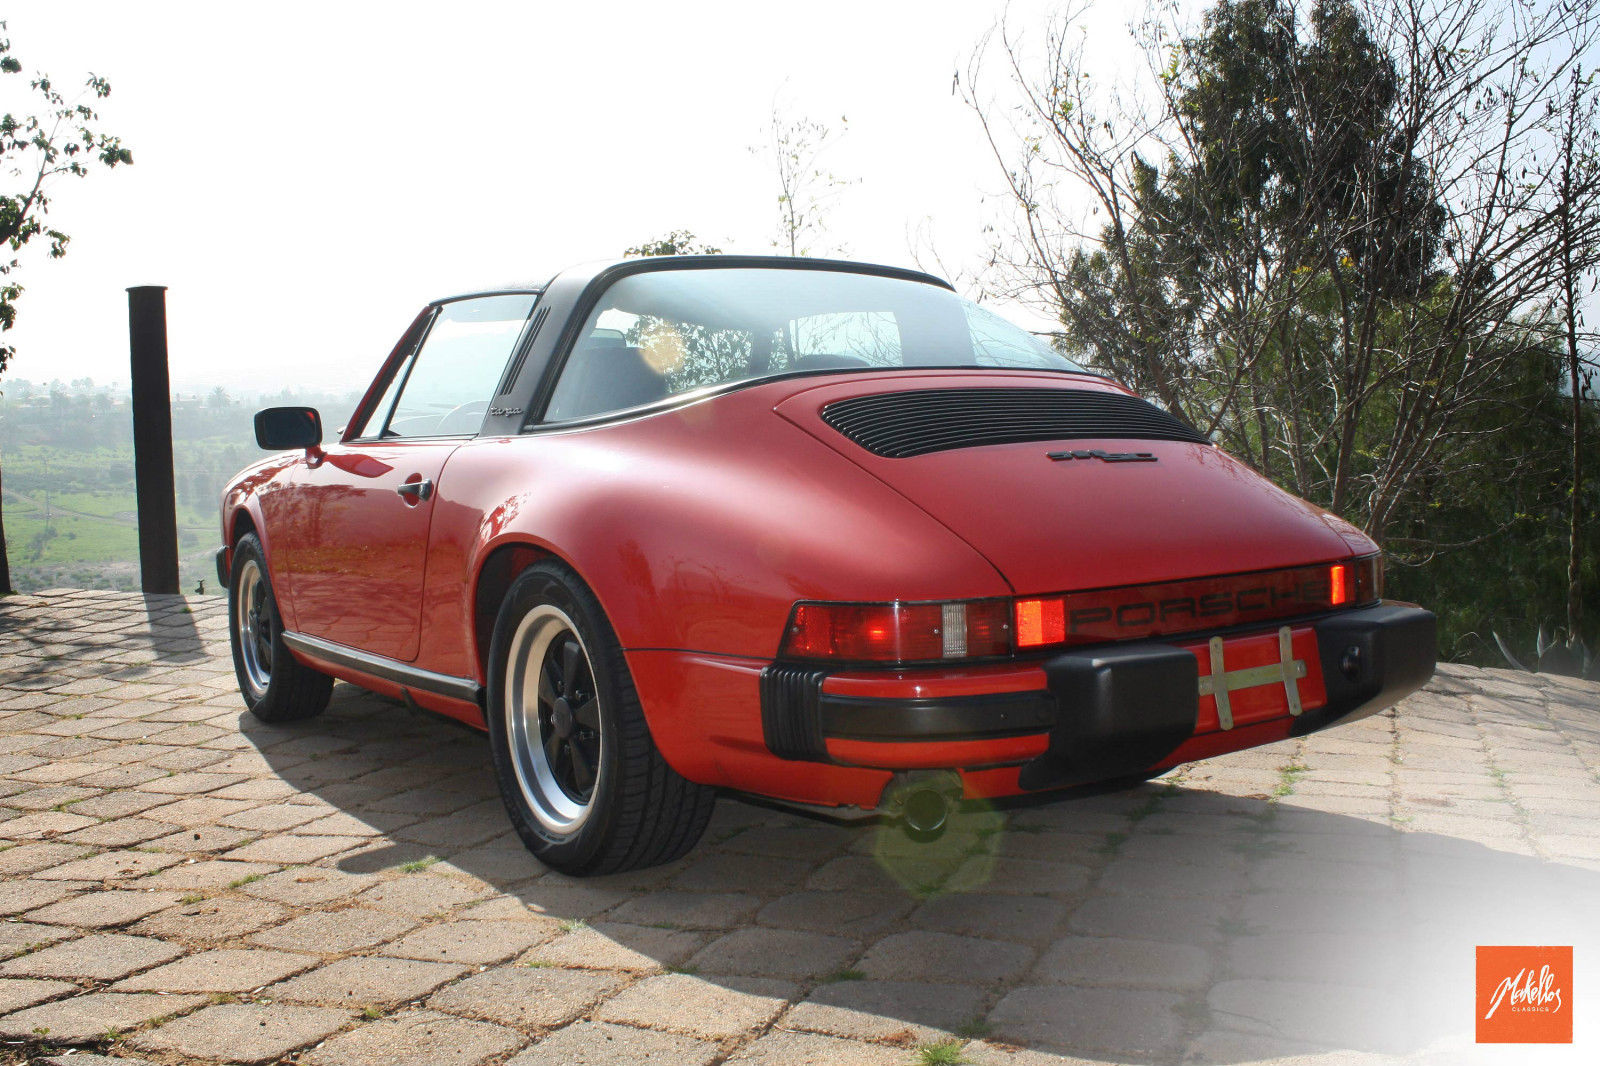 1981 porsche 911 sc targa 2 door 3 0l classic porsche. Black Bedroom Furniture Sets. Home Design Ideas